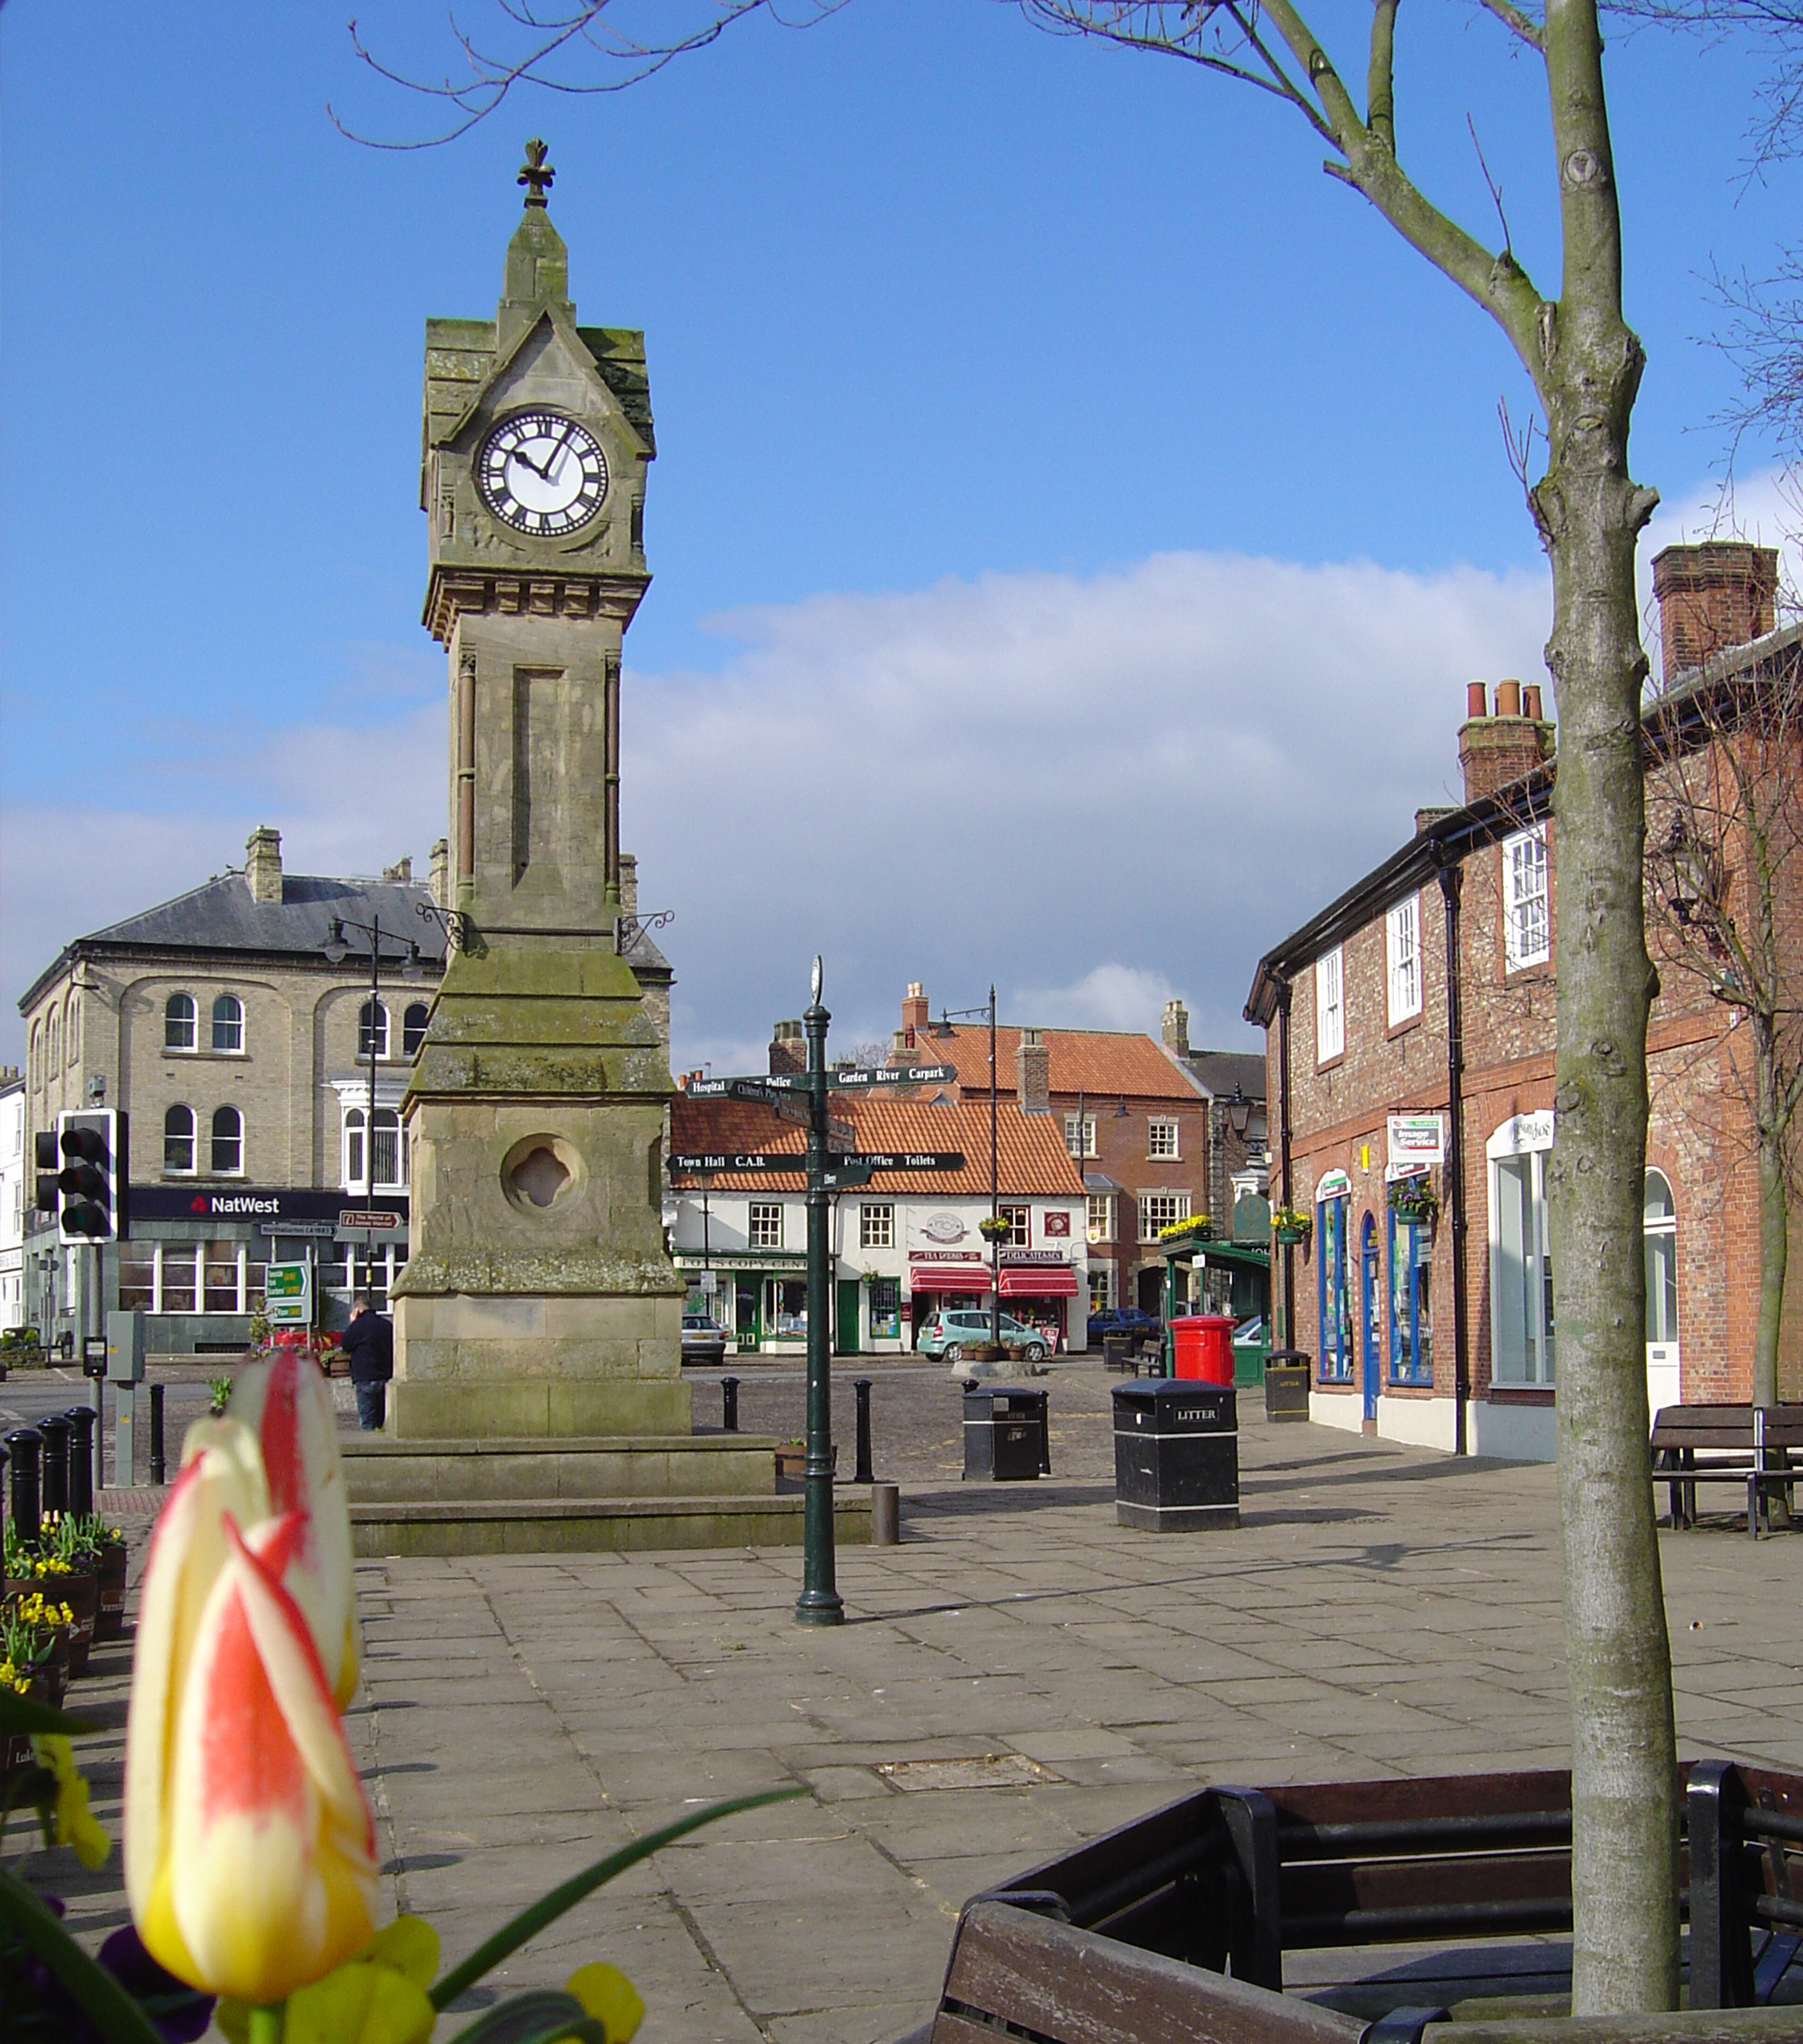 Get Ready For Brilliant Full Fibre Broadband As We Are Bringing Zzoomm To The People of Thirsk